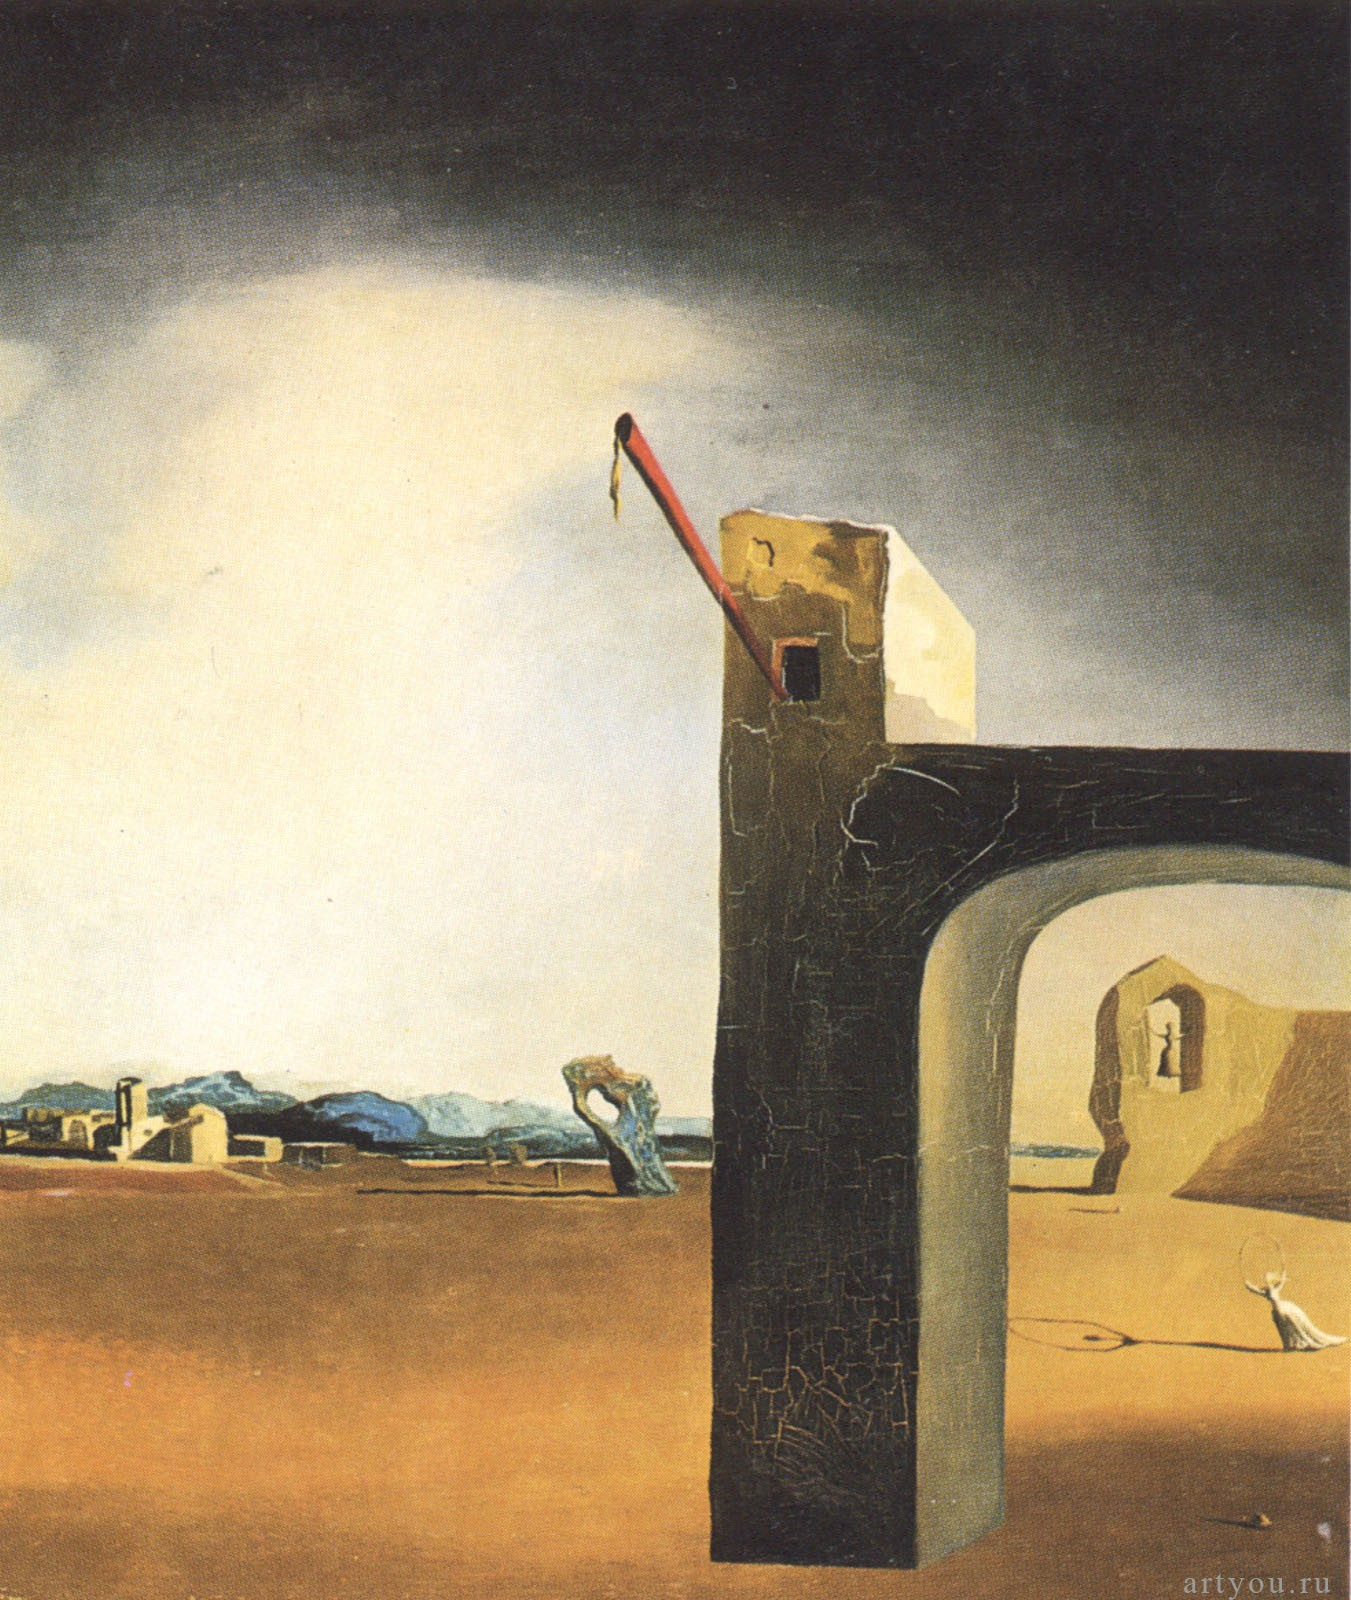 A Salvador Dalí Expert Says He Has Rediscovered One of the Artist's Long-Lost Paintings